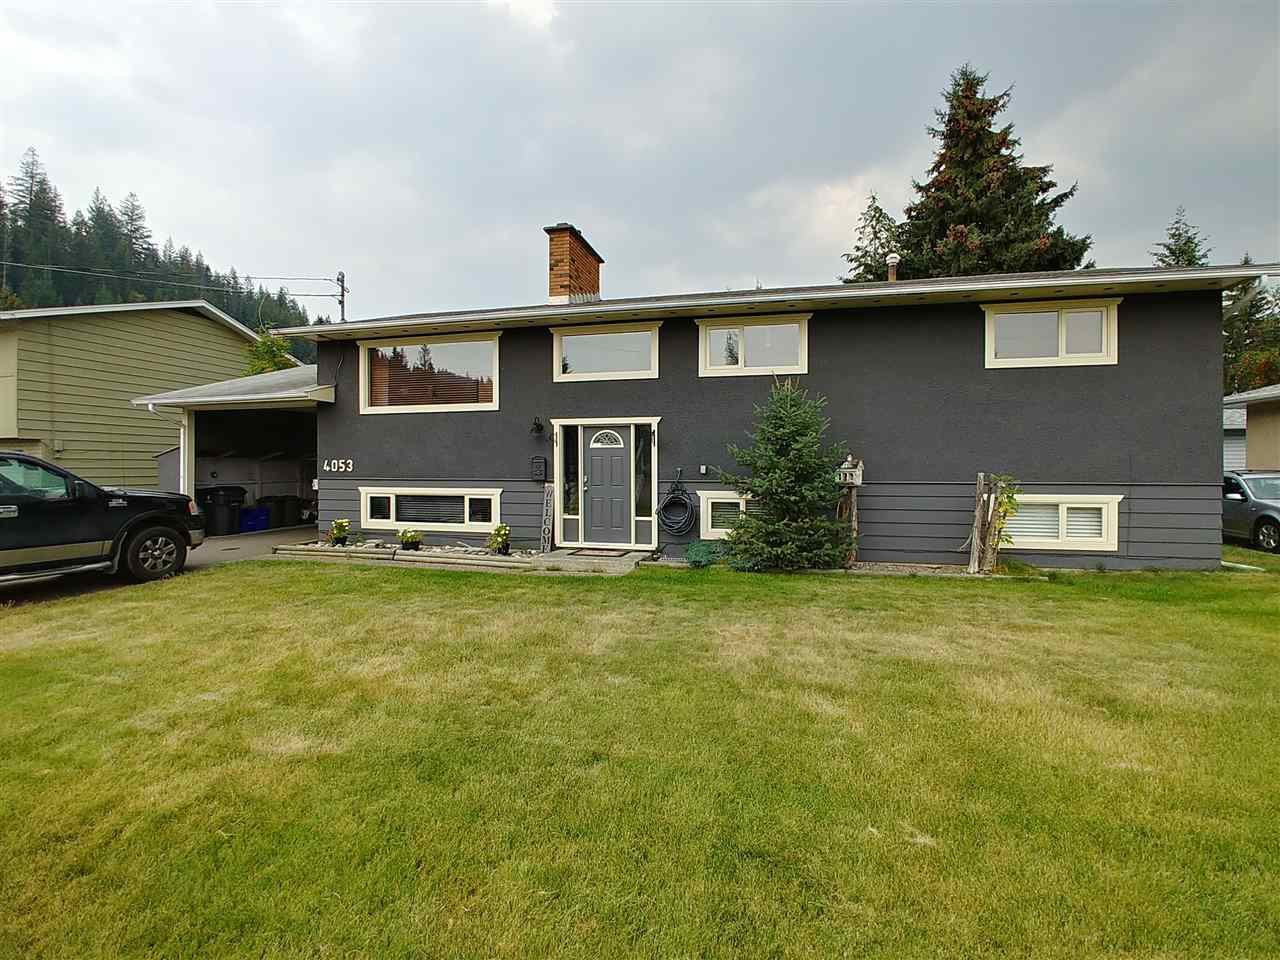 Main Photo: 4053 CHURCHILL ROAD in : Edgewood Terrace House for sale : MLS®# R2302471